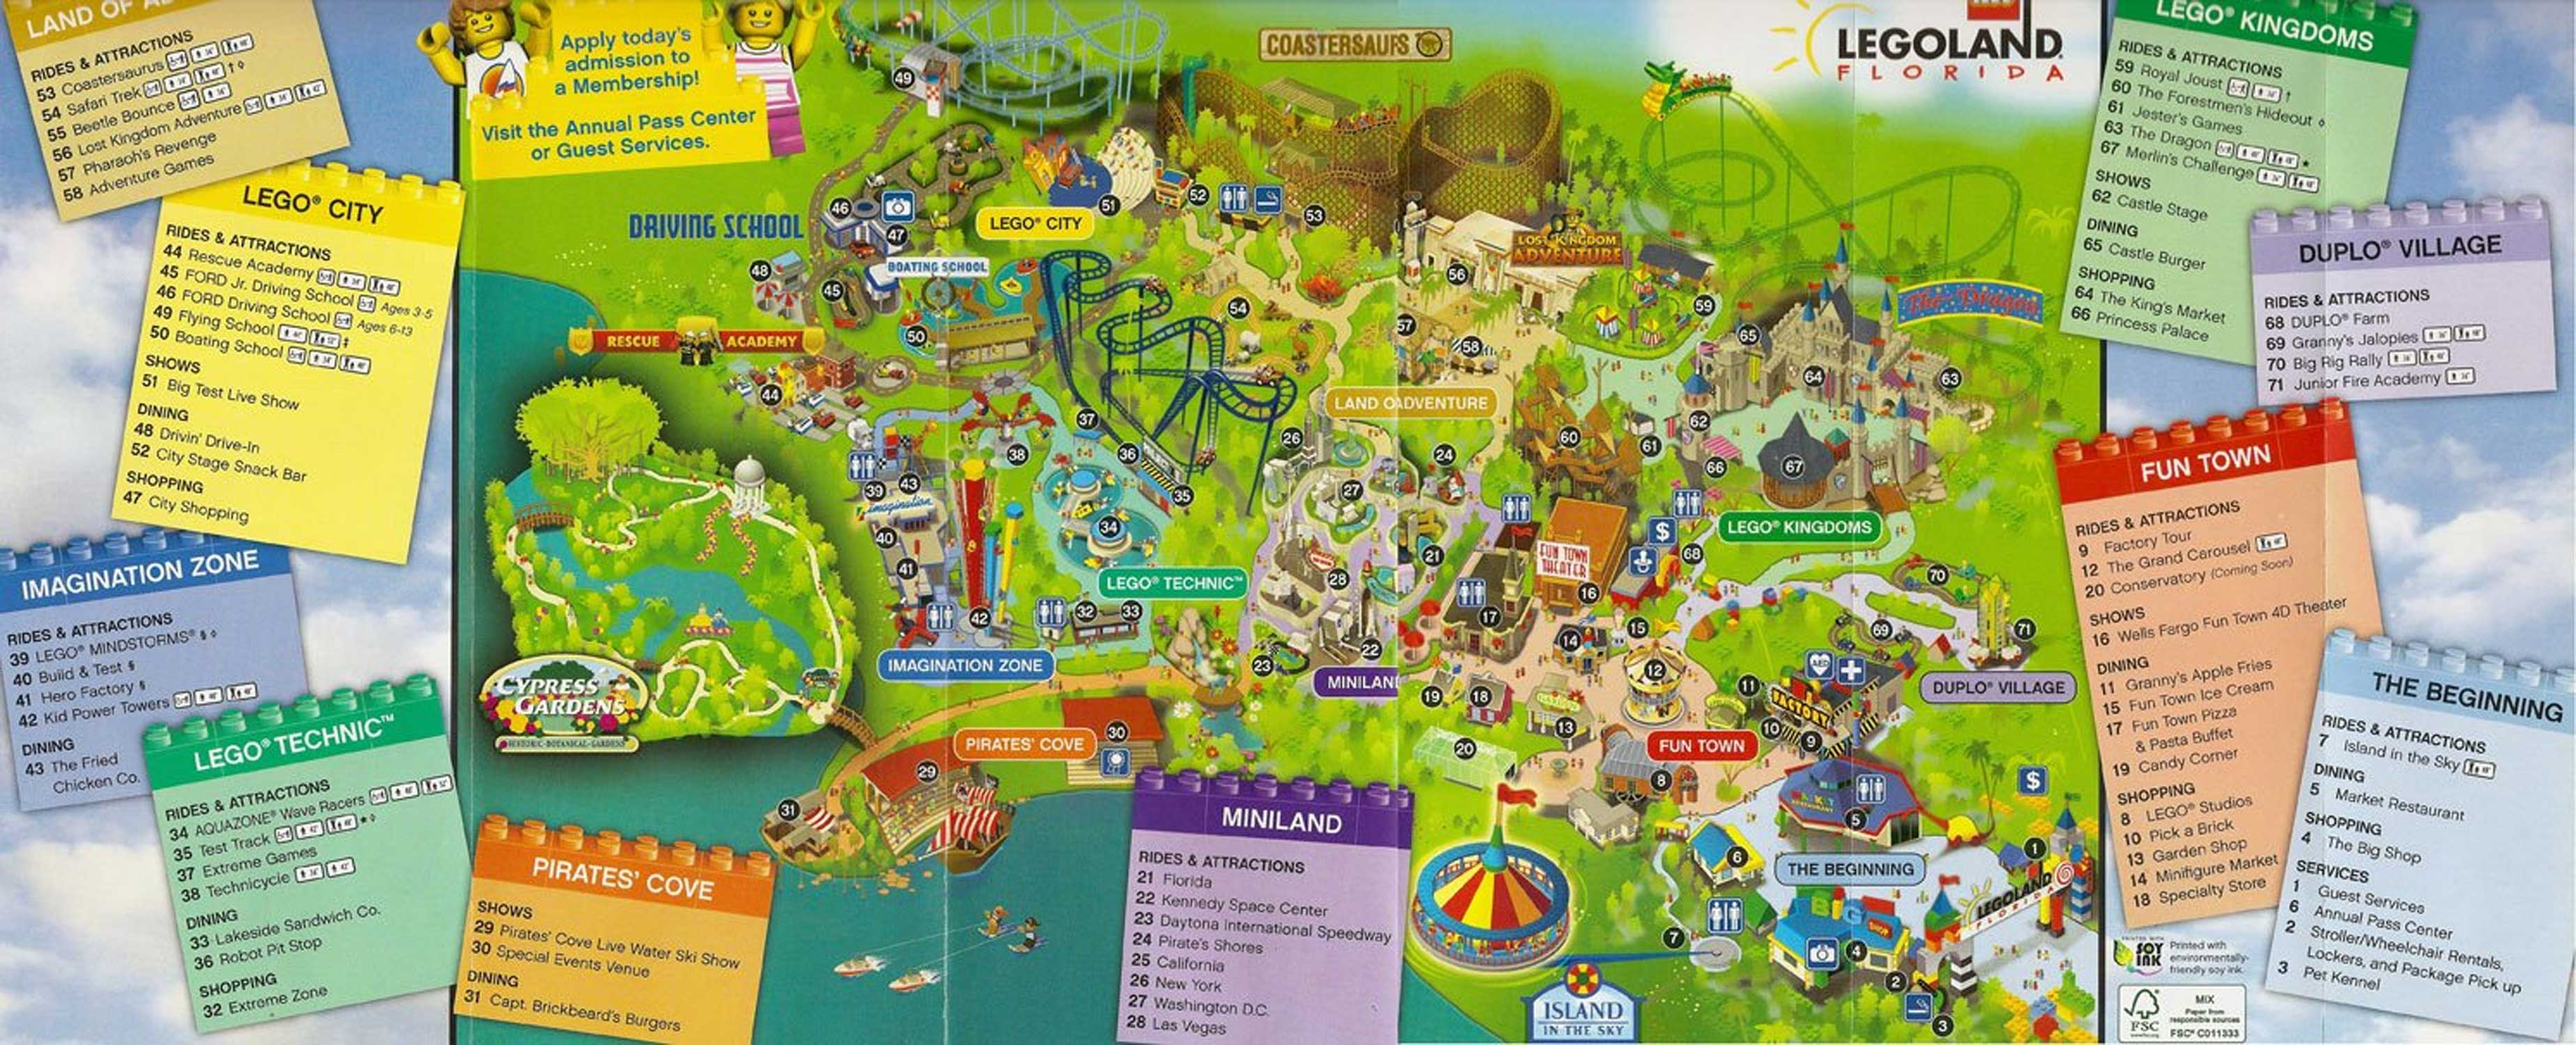 legoland resort florida map